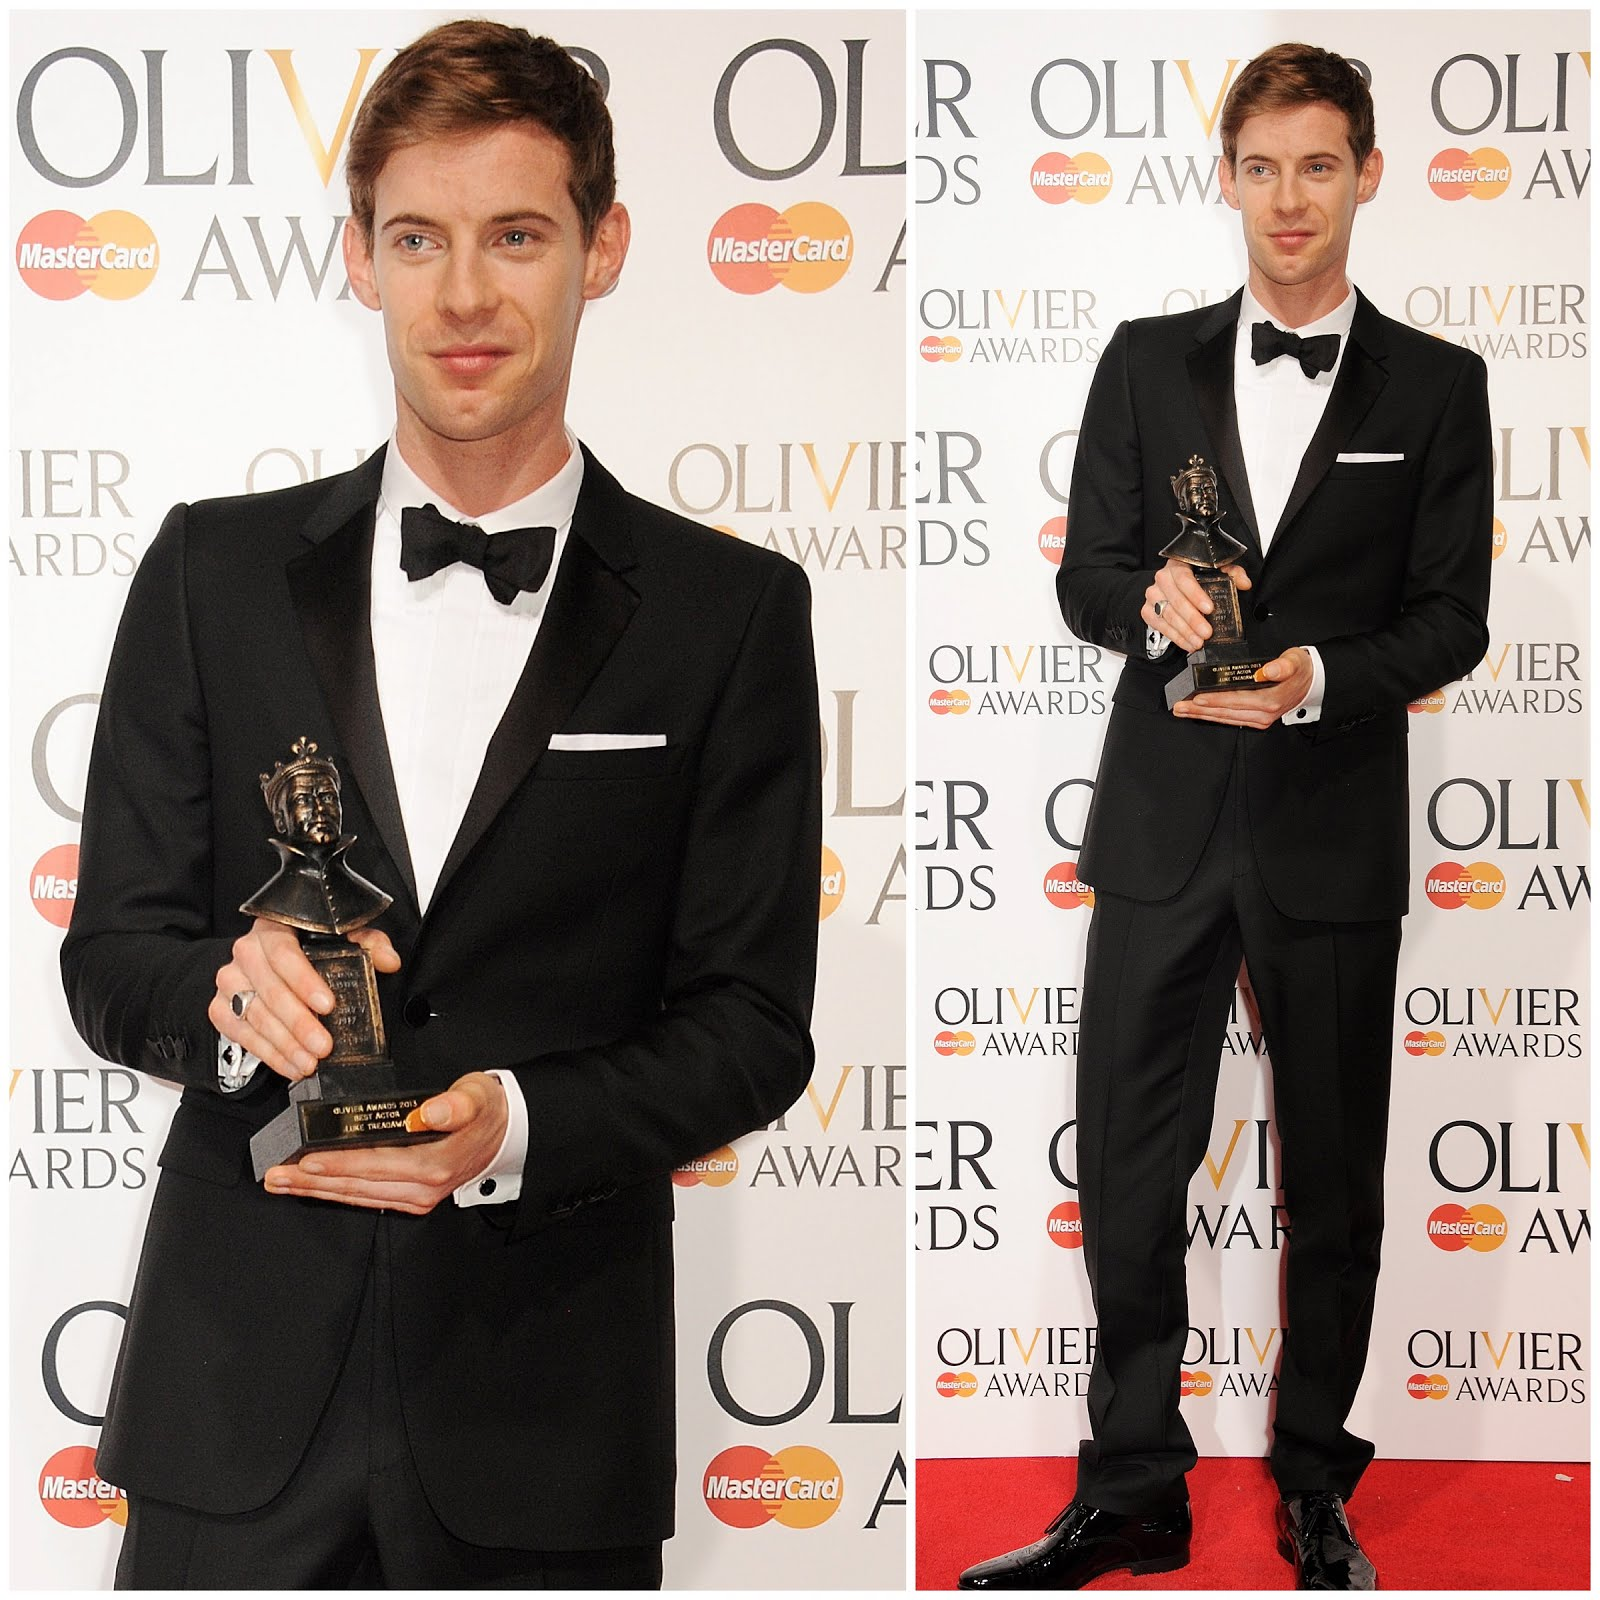 00O00 Menswear Blog: Luke Threadaway in Burberry Tailoring - 2013 Lawrence Olivier Awards London April 2013